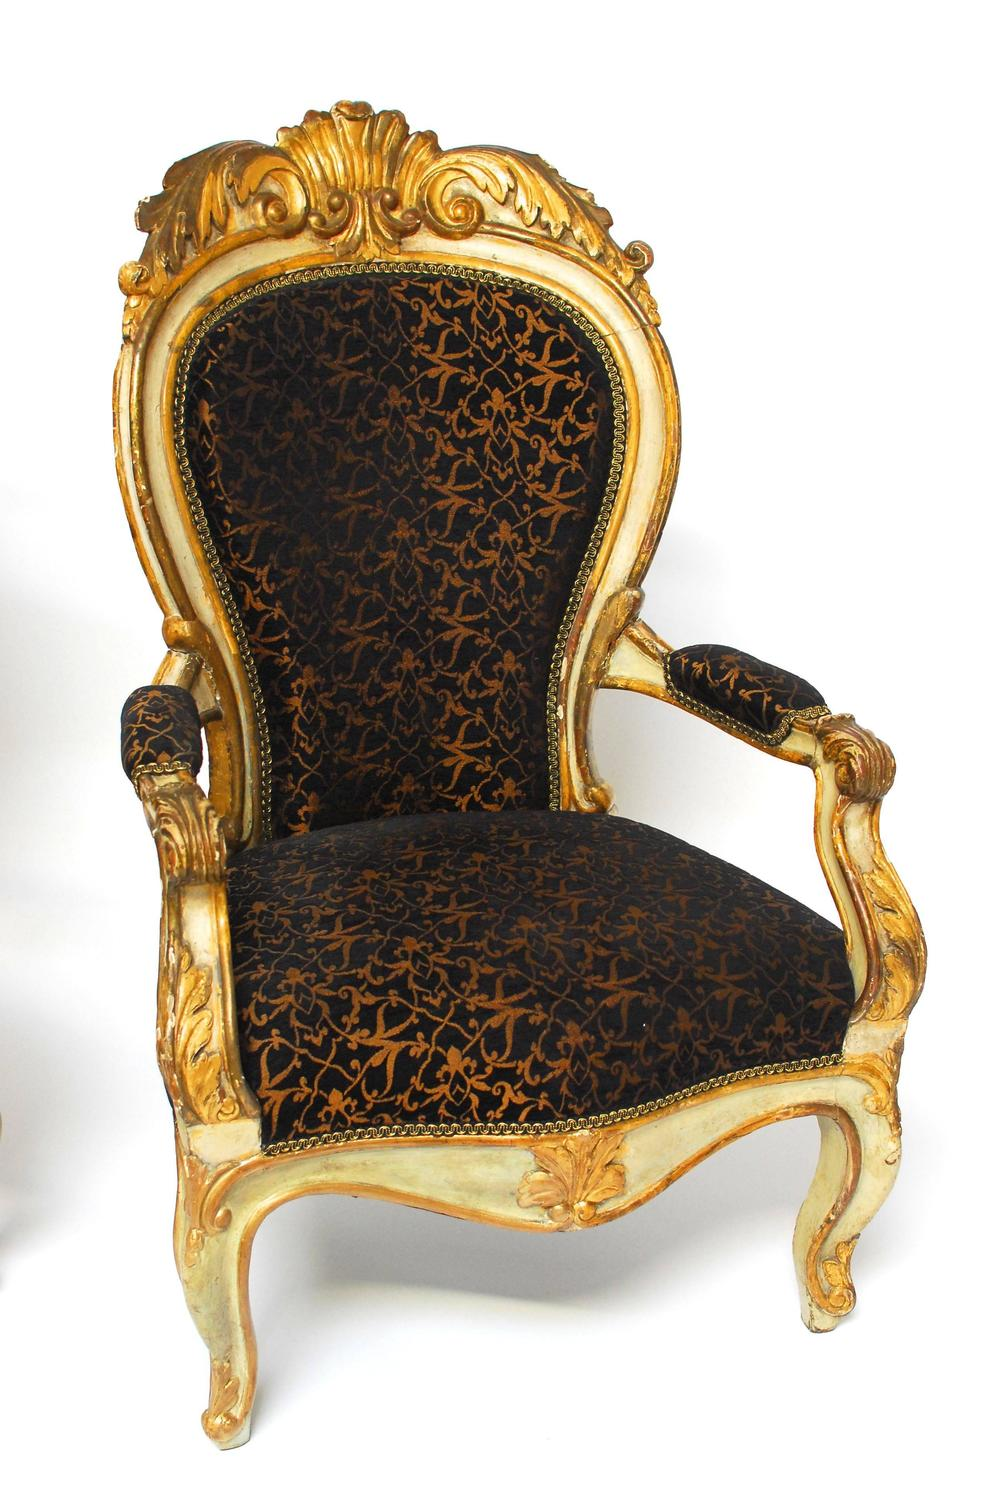 19th century louis xv fauteuils at 1stdibs